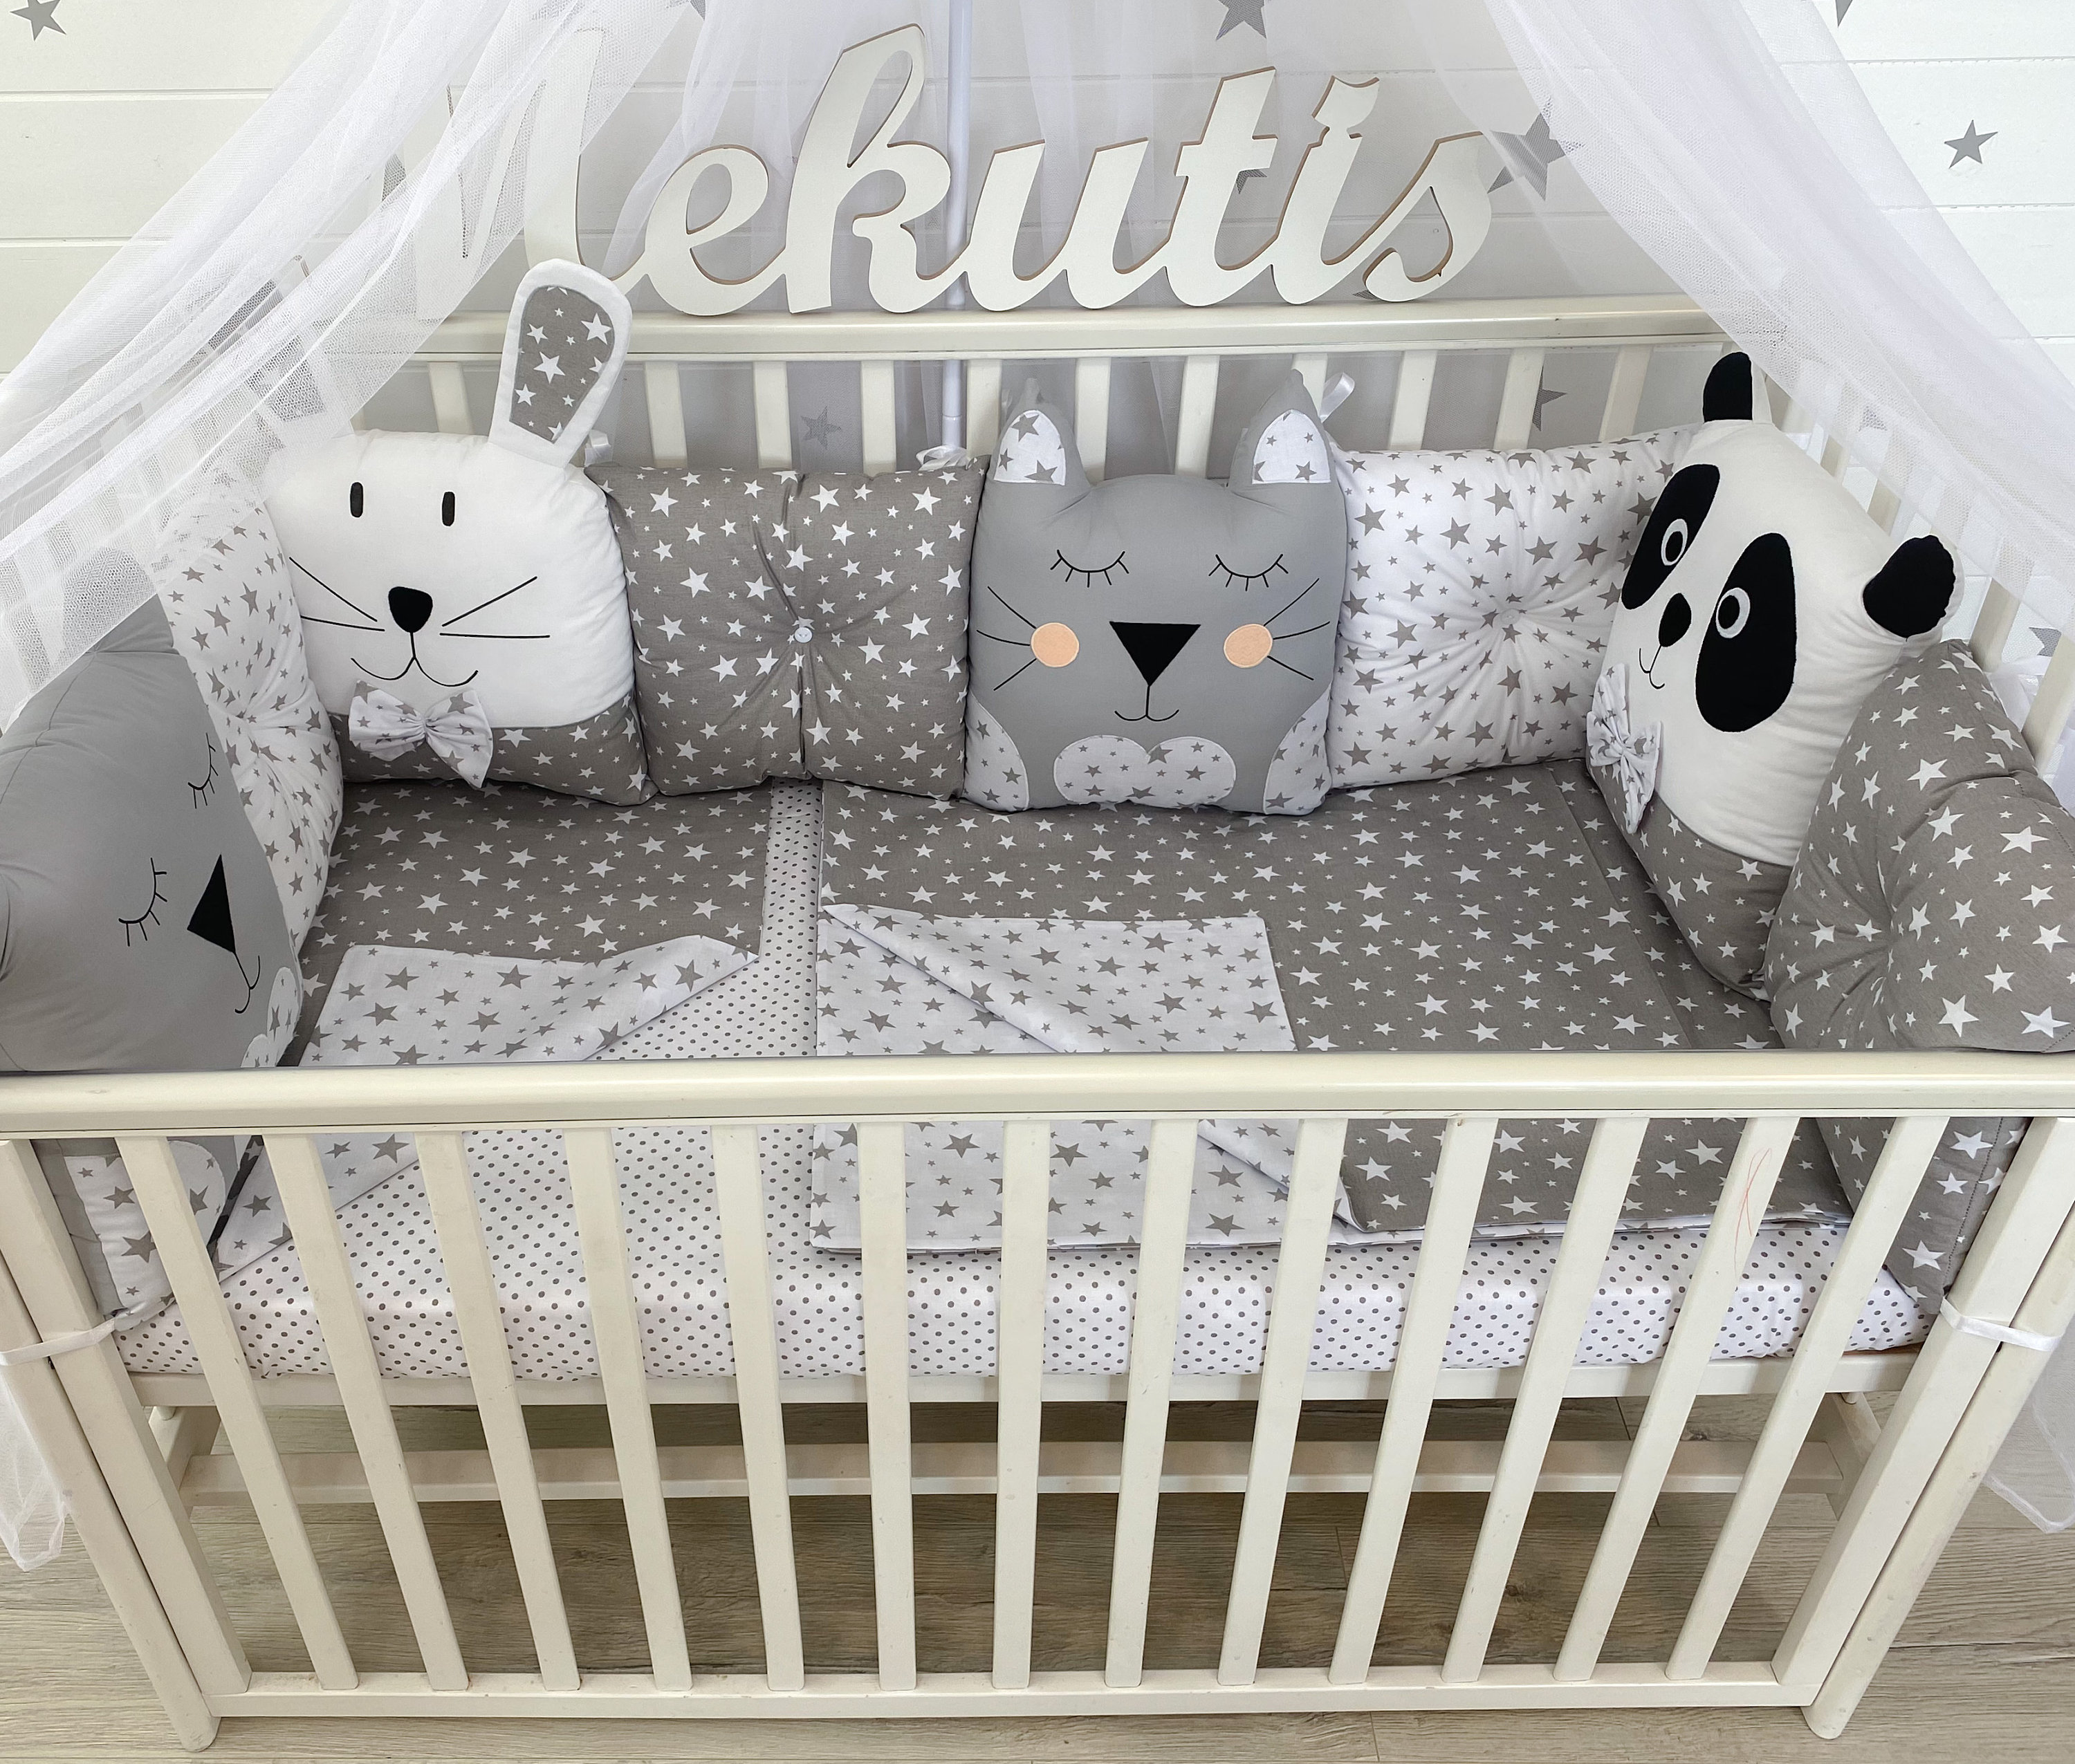 Cot Bumper Baby Bedding Set Baby Gifts Crib Bumper Baby Crib Nursery Set Nursery Cot Sets Cot Bedding Set Girl Baby BlanketMD curtain